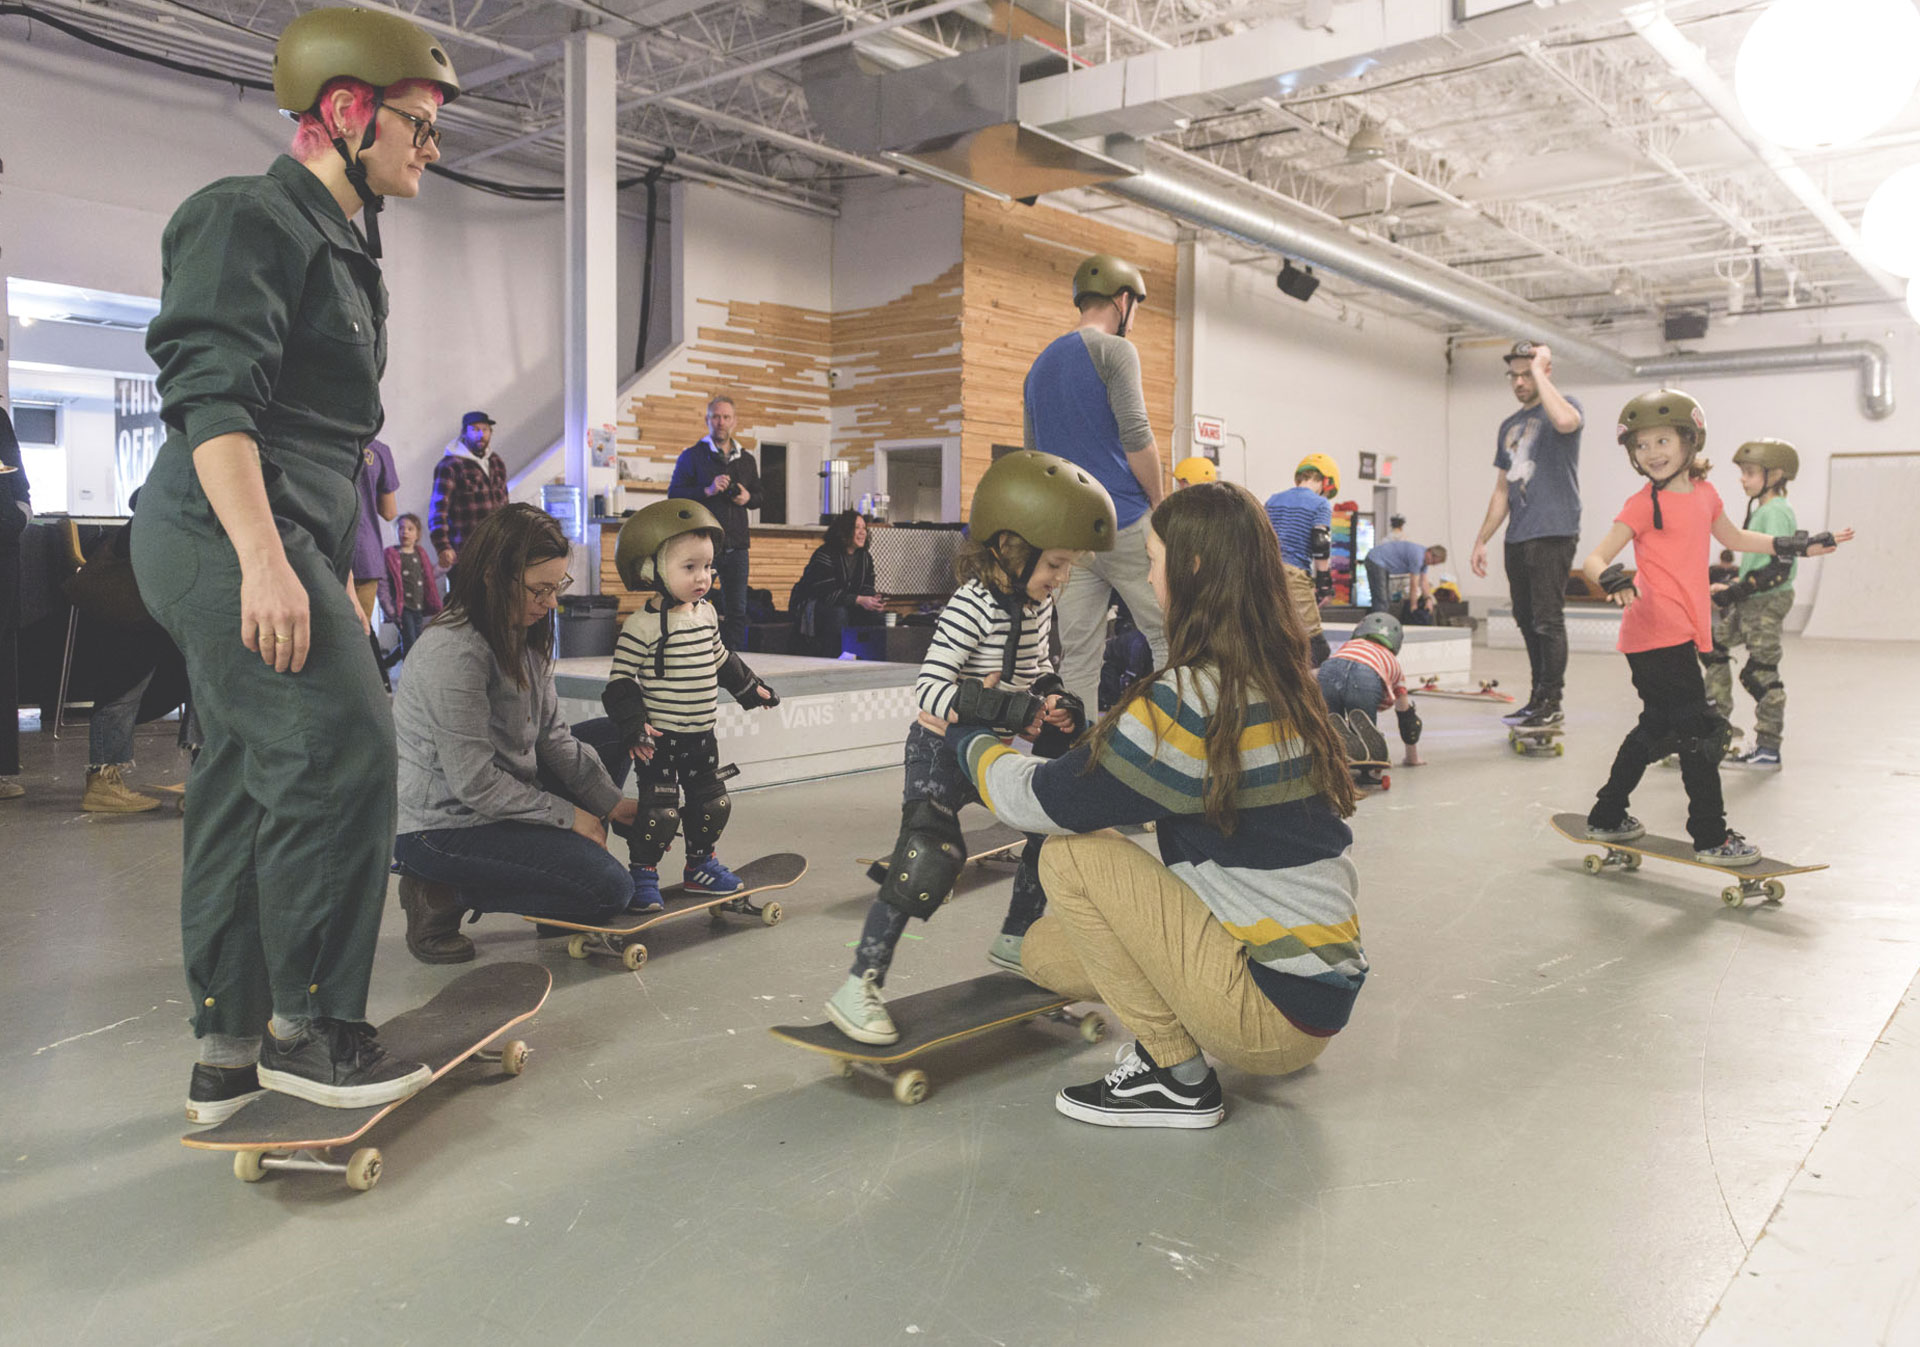 Girls Skate Clinics as part of House of Vans